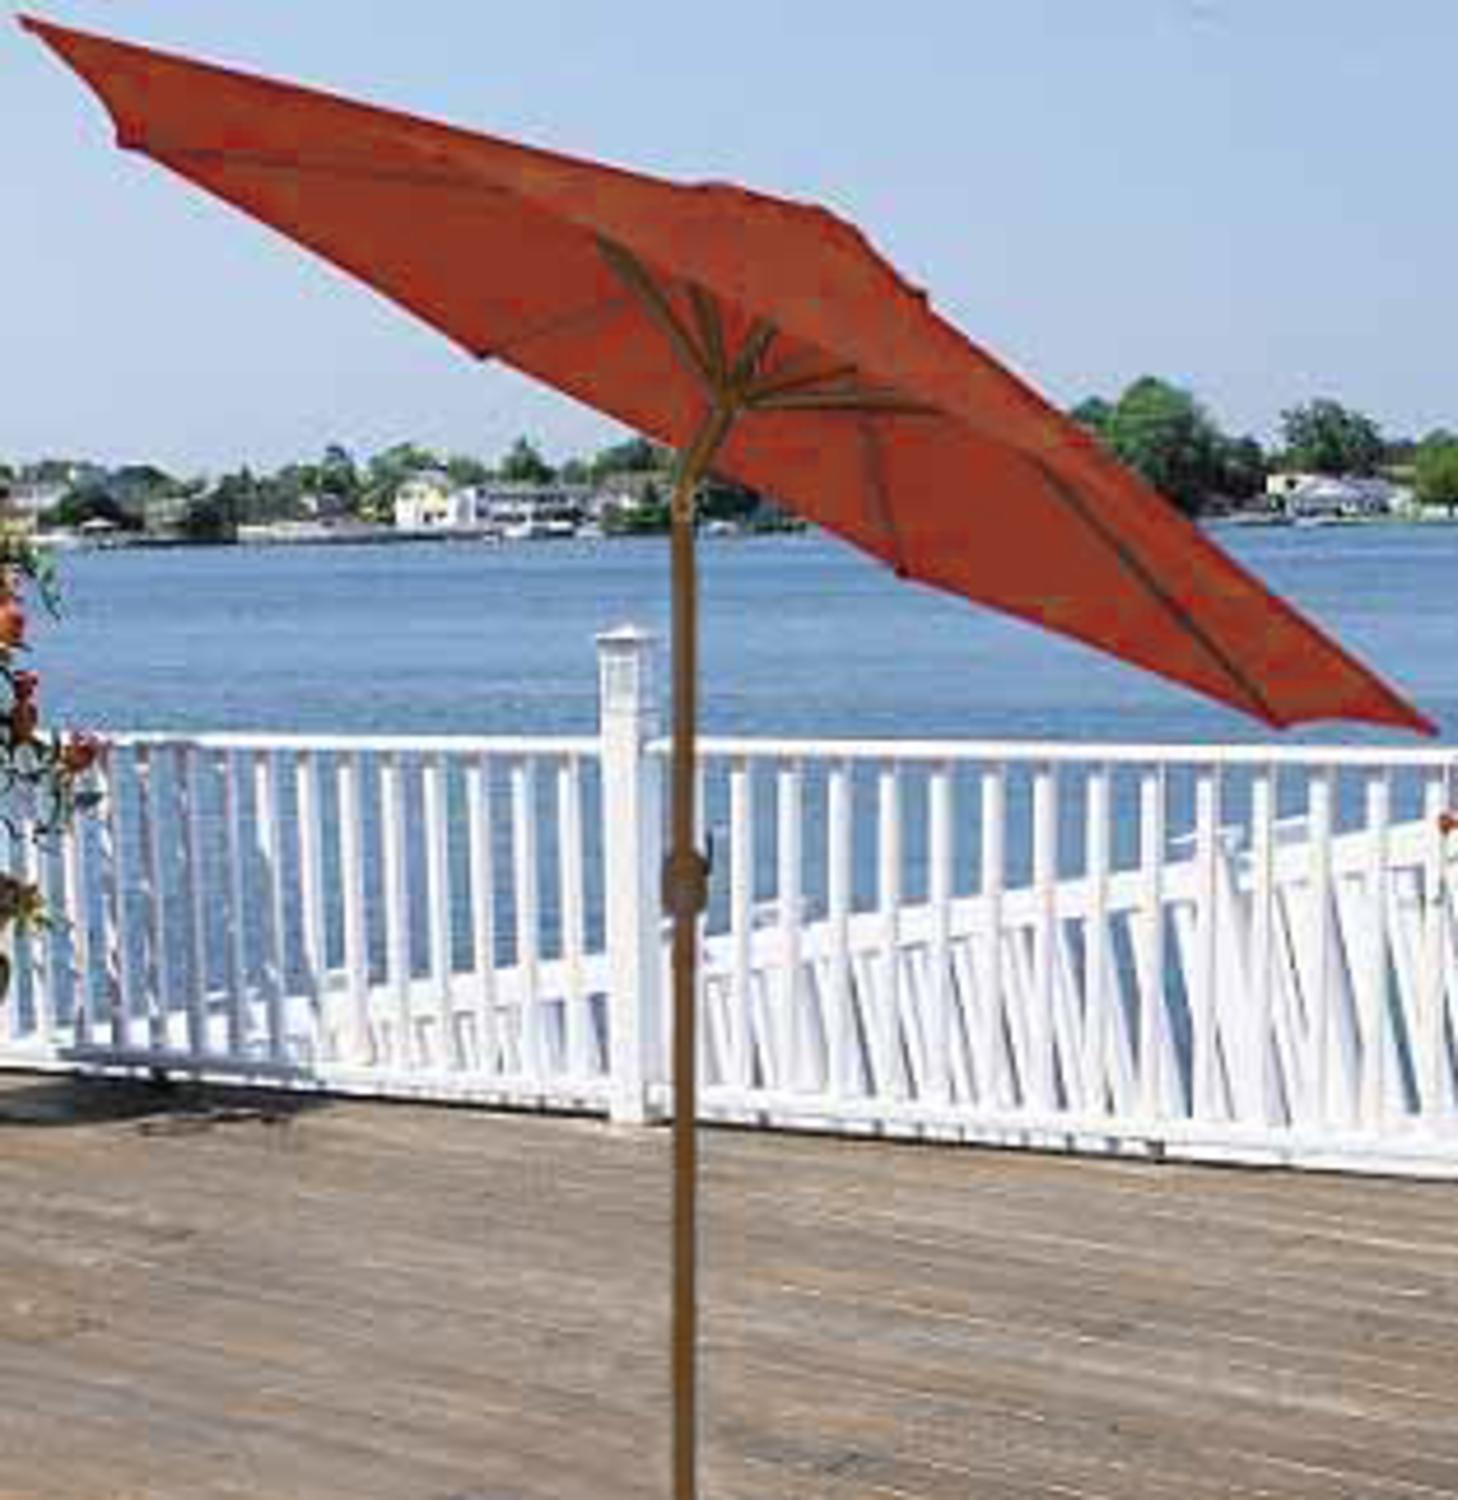 9u0027 Outdoor Patio Market Umbrella With Hand Crank And Tilt   Terra Cotta U0026  Brown